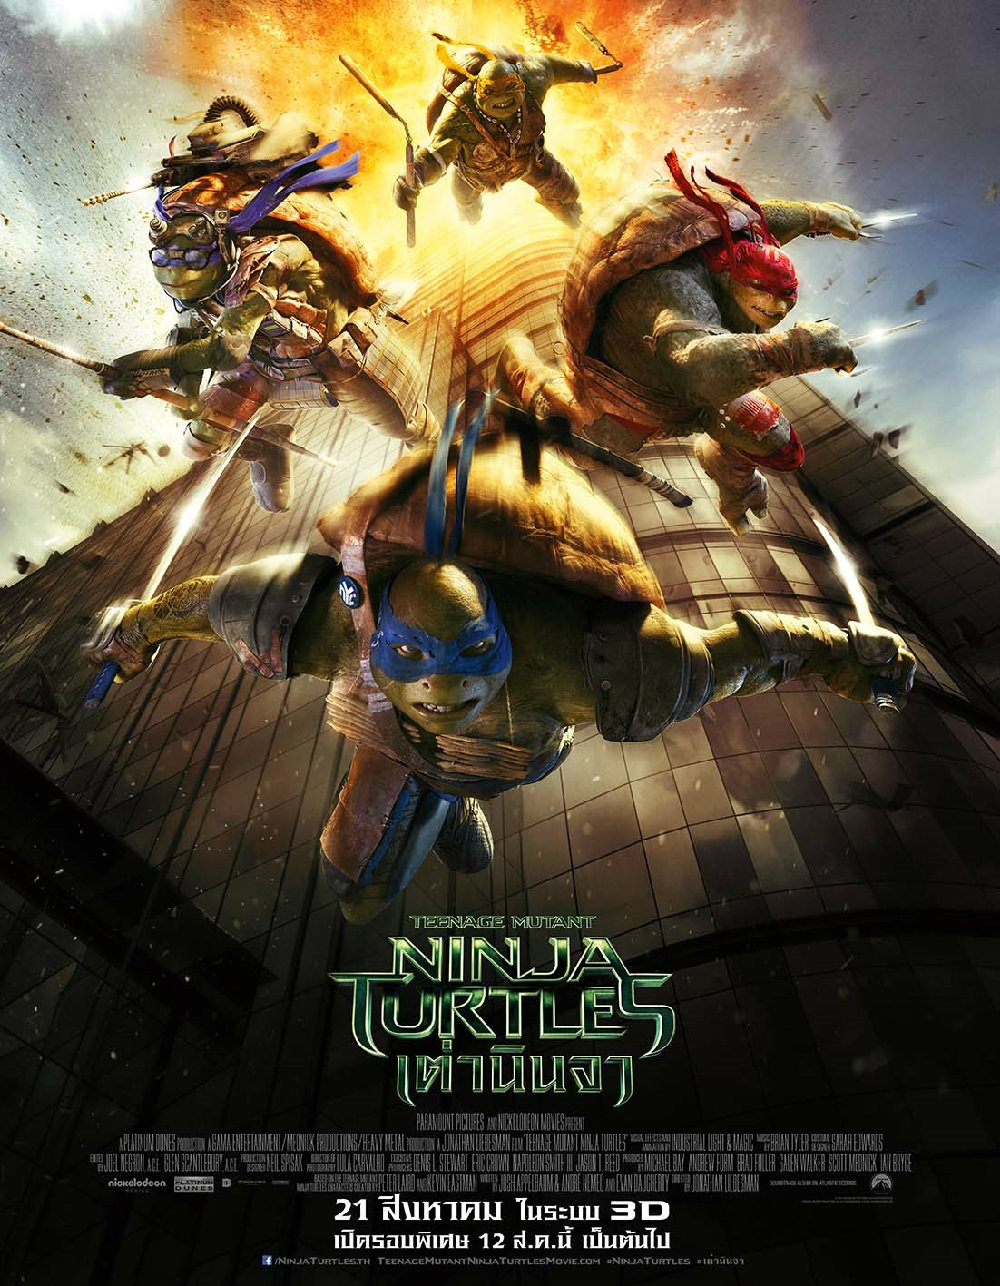 Teenage Mutant Ninja Turtles เต่านินจา